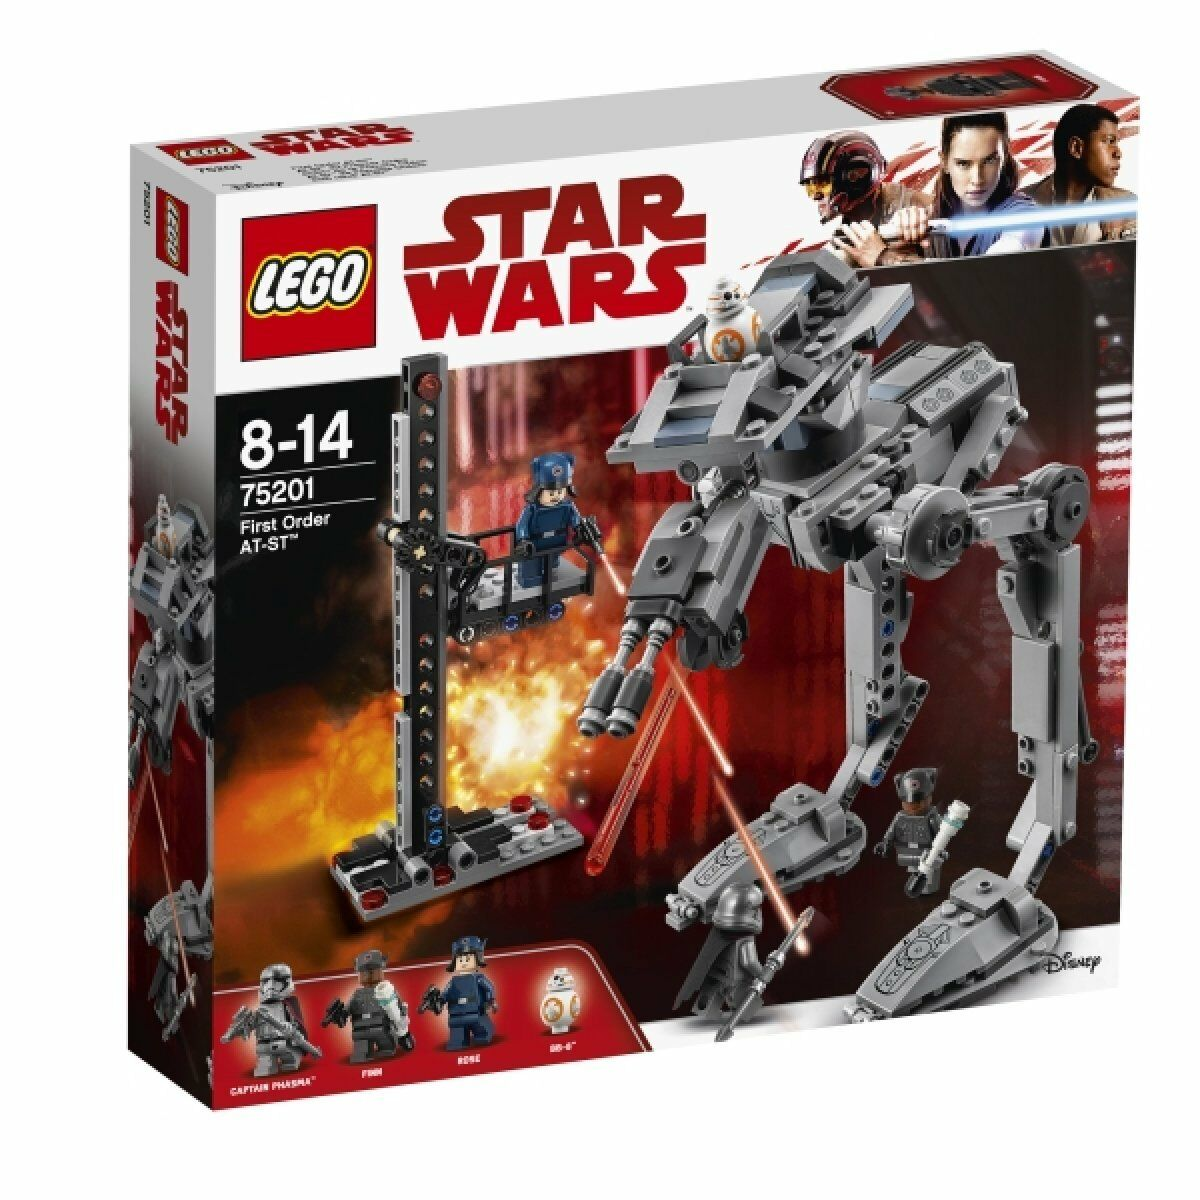 LEGO ® Star Wars 75201 Set First Order AT-ST